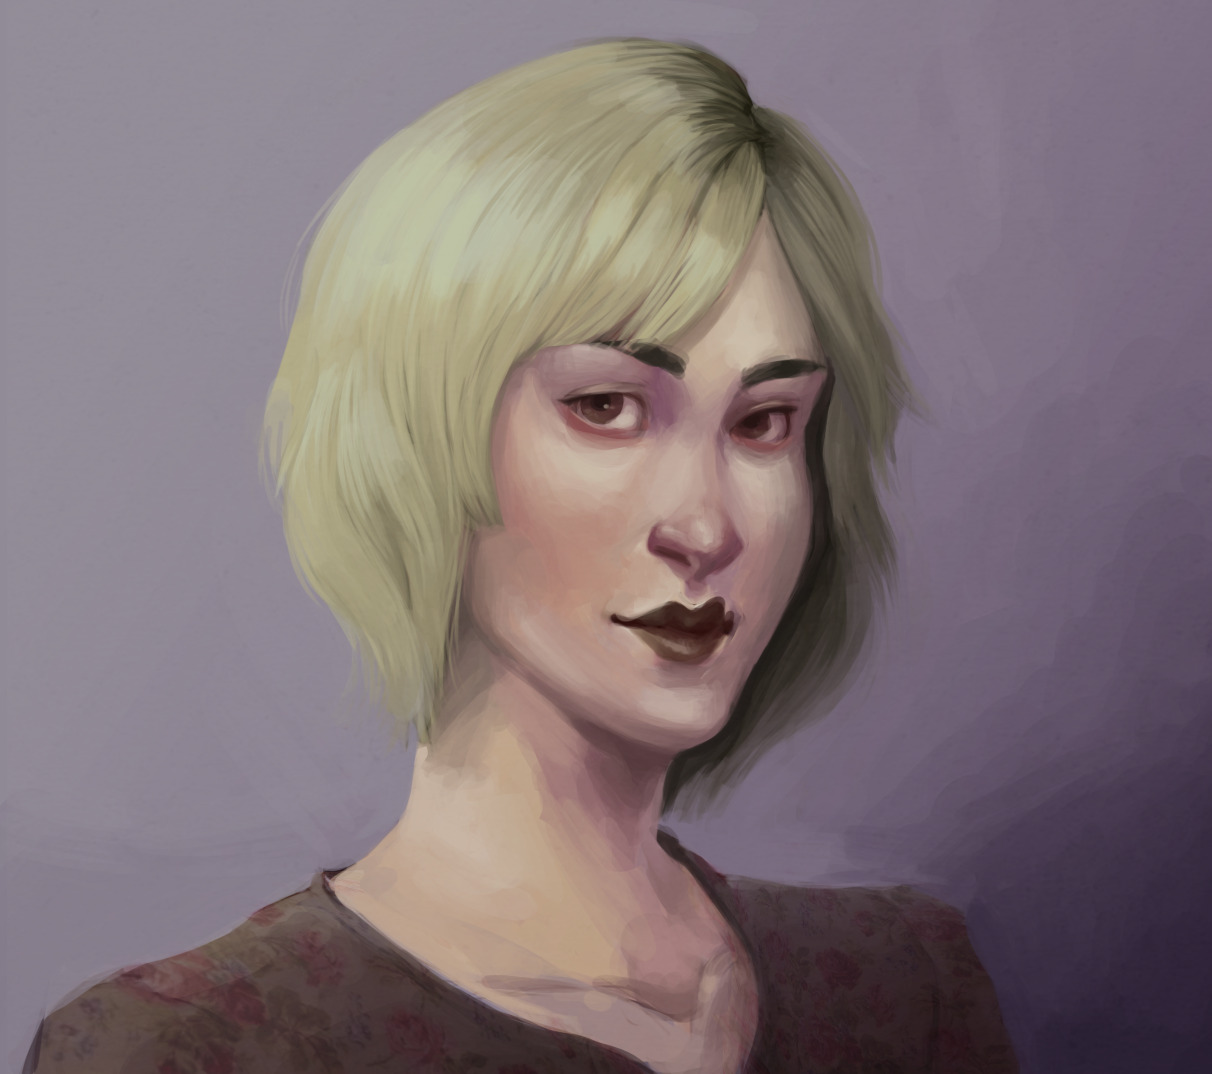 Paint over of an old portrait practice for, well, practice.  Brushing up on painting, checking out where I am with it and where I want to go. The old version from a year ago can be foundhere.